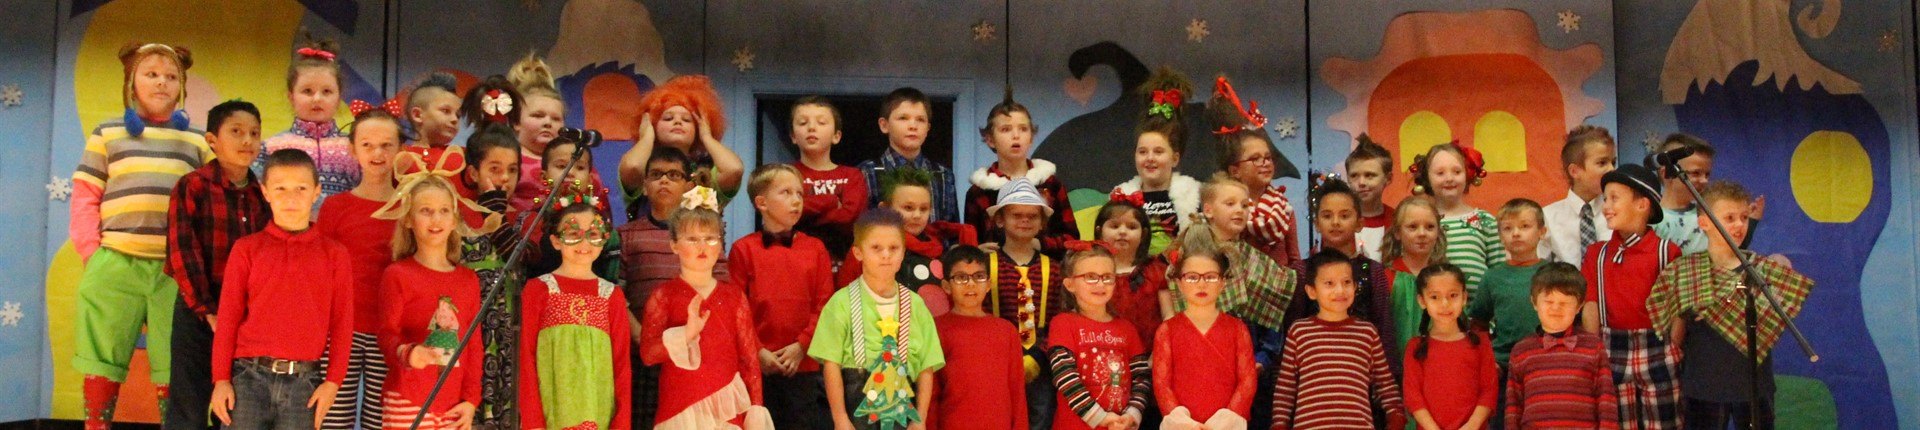 "North Middletown Elementary Christmas Program ""Grinch"""